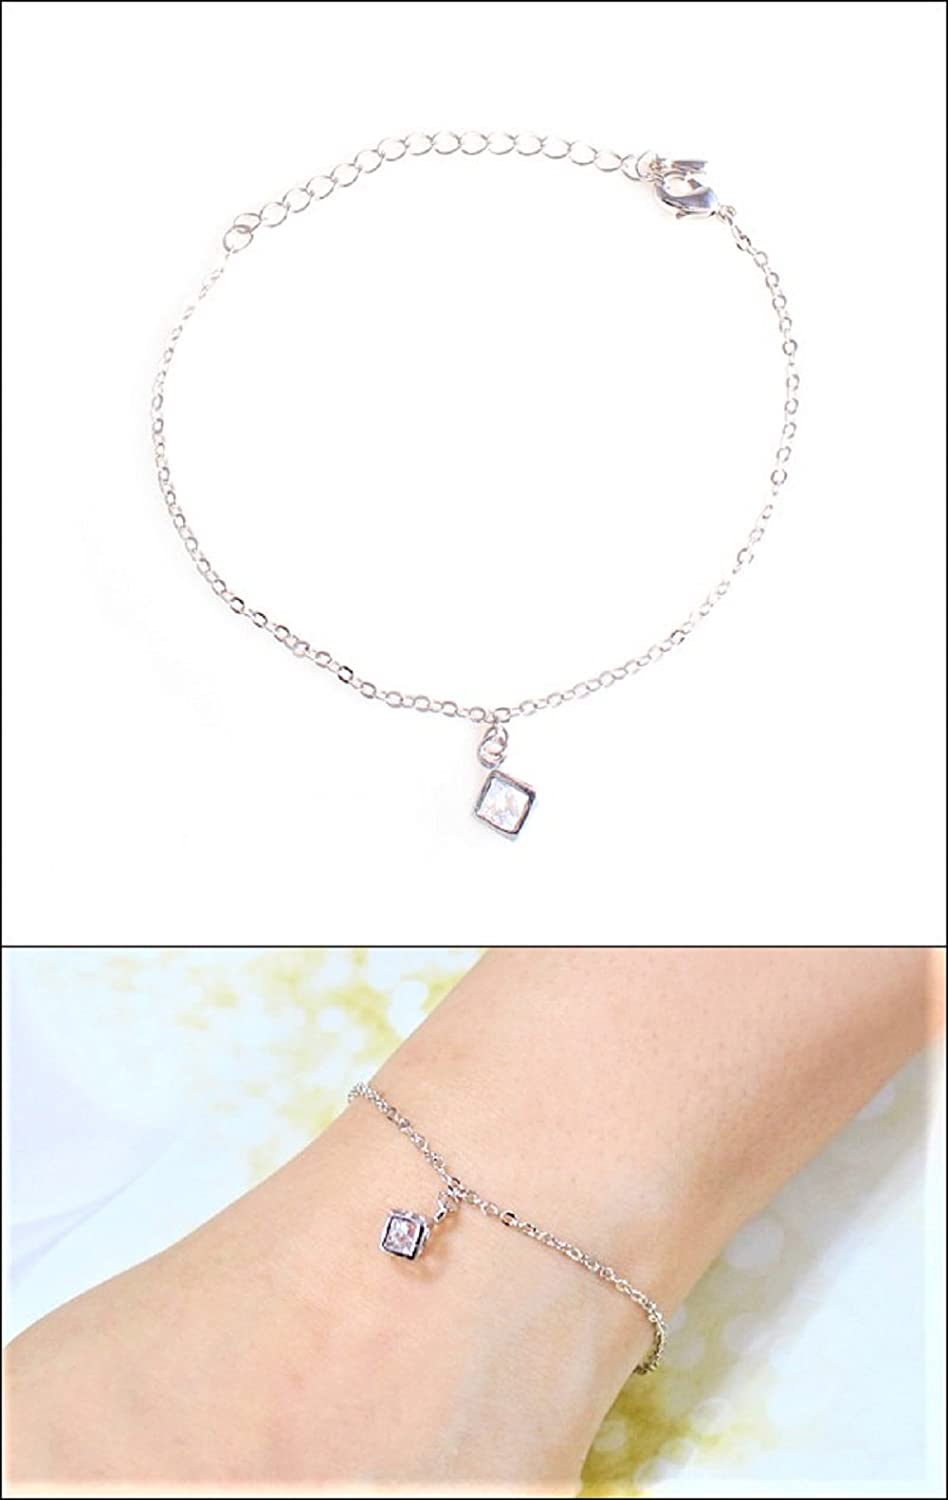 Shimjee Handmade 14K Gold Filled Bracelet,Solid Cube Pendant with Cubic Zirconia Thin Chain White Gold